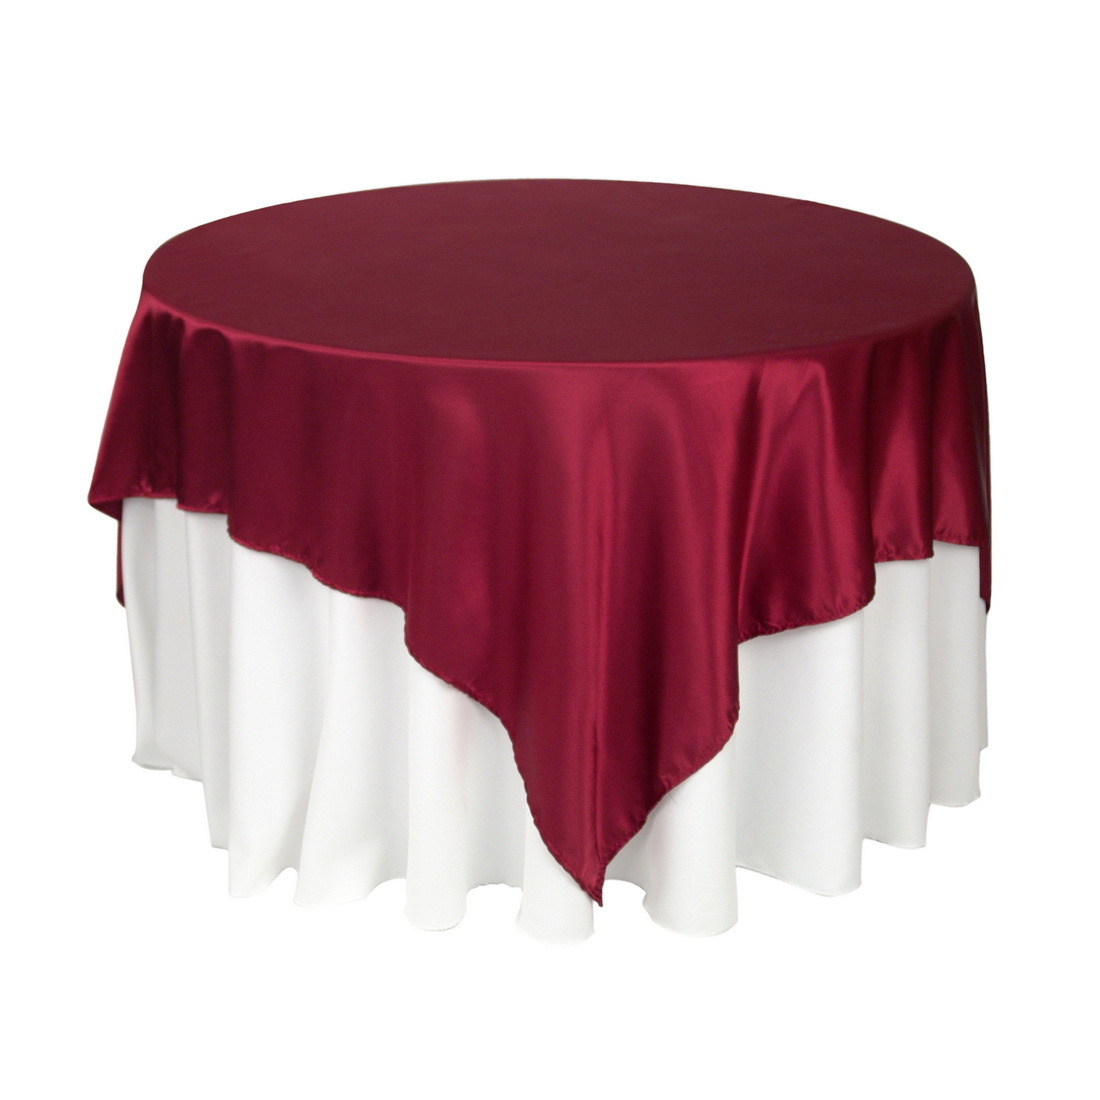 TABLECLOTHS FOR WEDDINGS - YOUR ASSISTANT